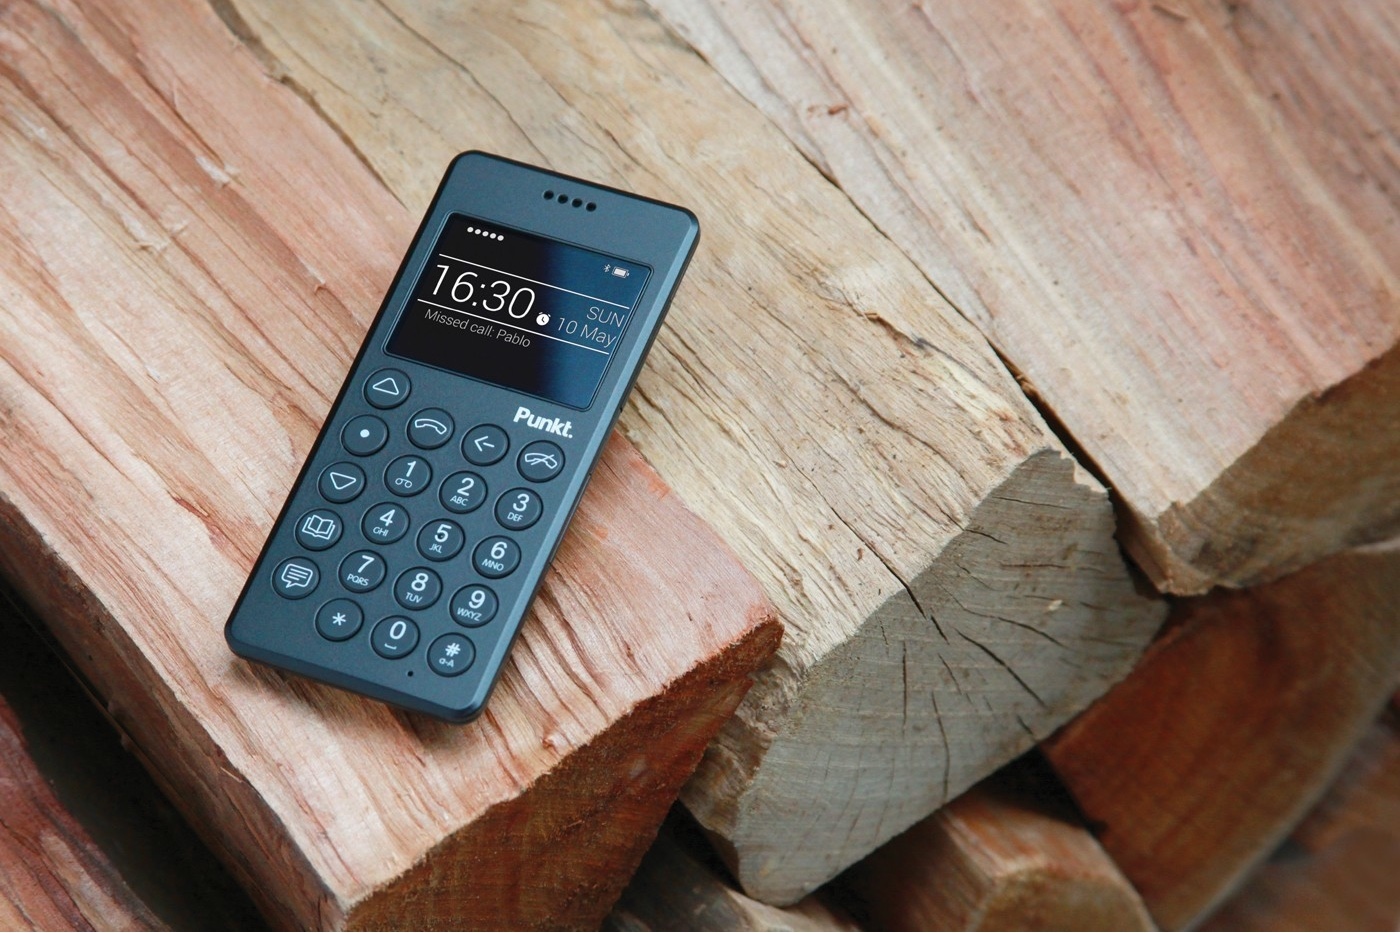 The MP01 mobile phone for Punkt. Image via Punkt.